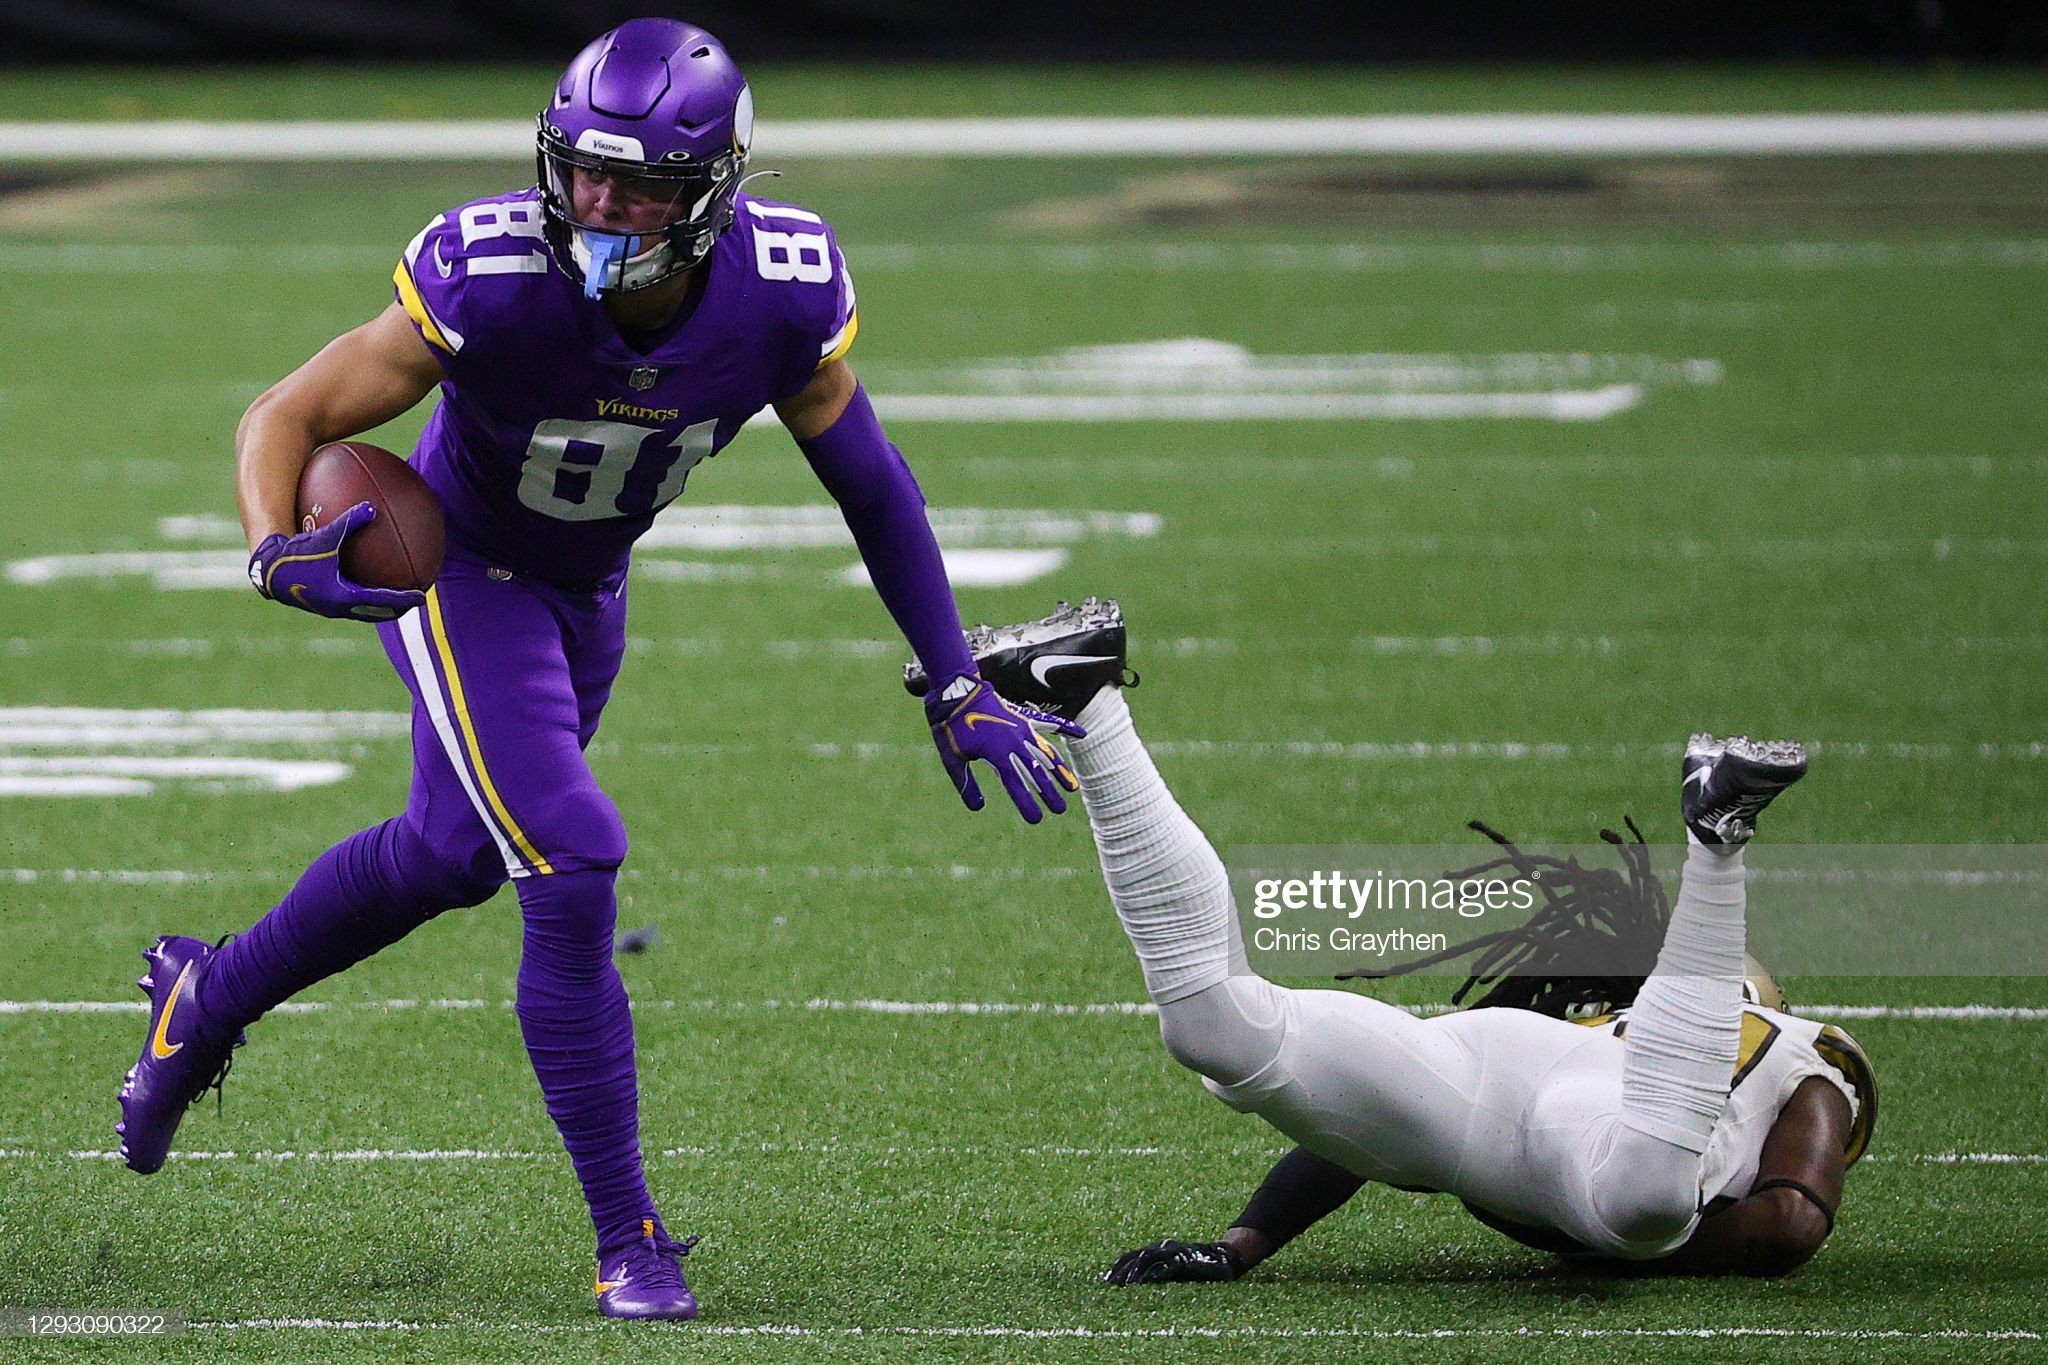 IMAGE(https://media.gettyimages.com/photos/bisi-johnson-of-the-minnesota-vikings-moves-past-janoris-jenkins-of-picture-id1293090322?s=2048x2048)